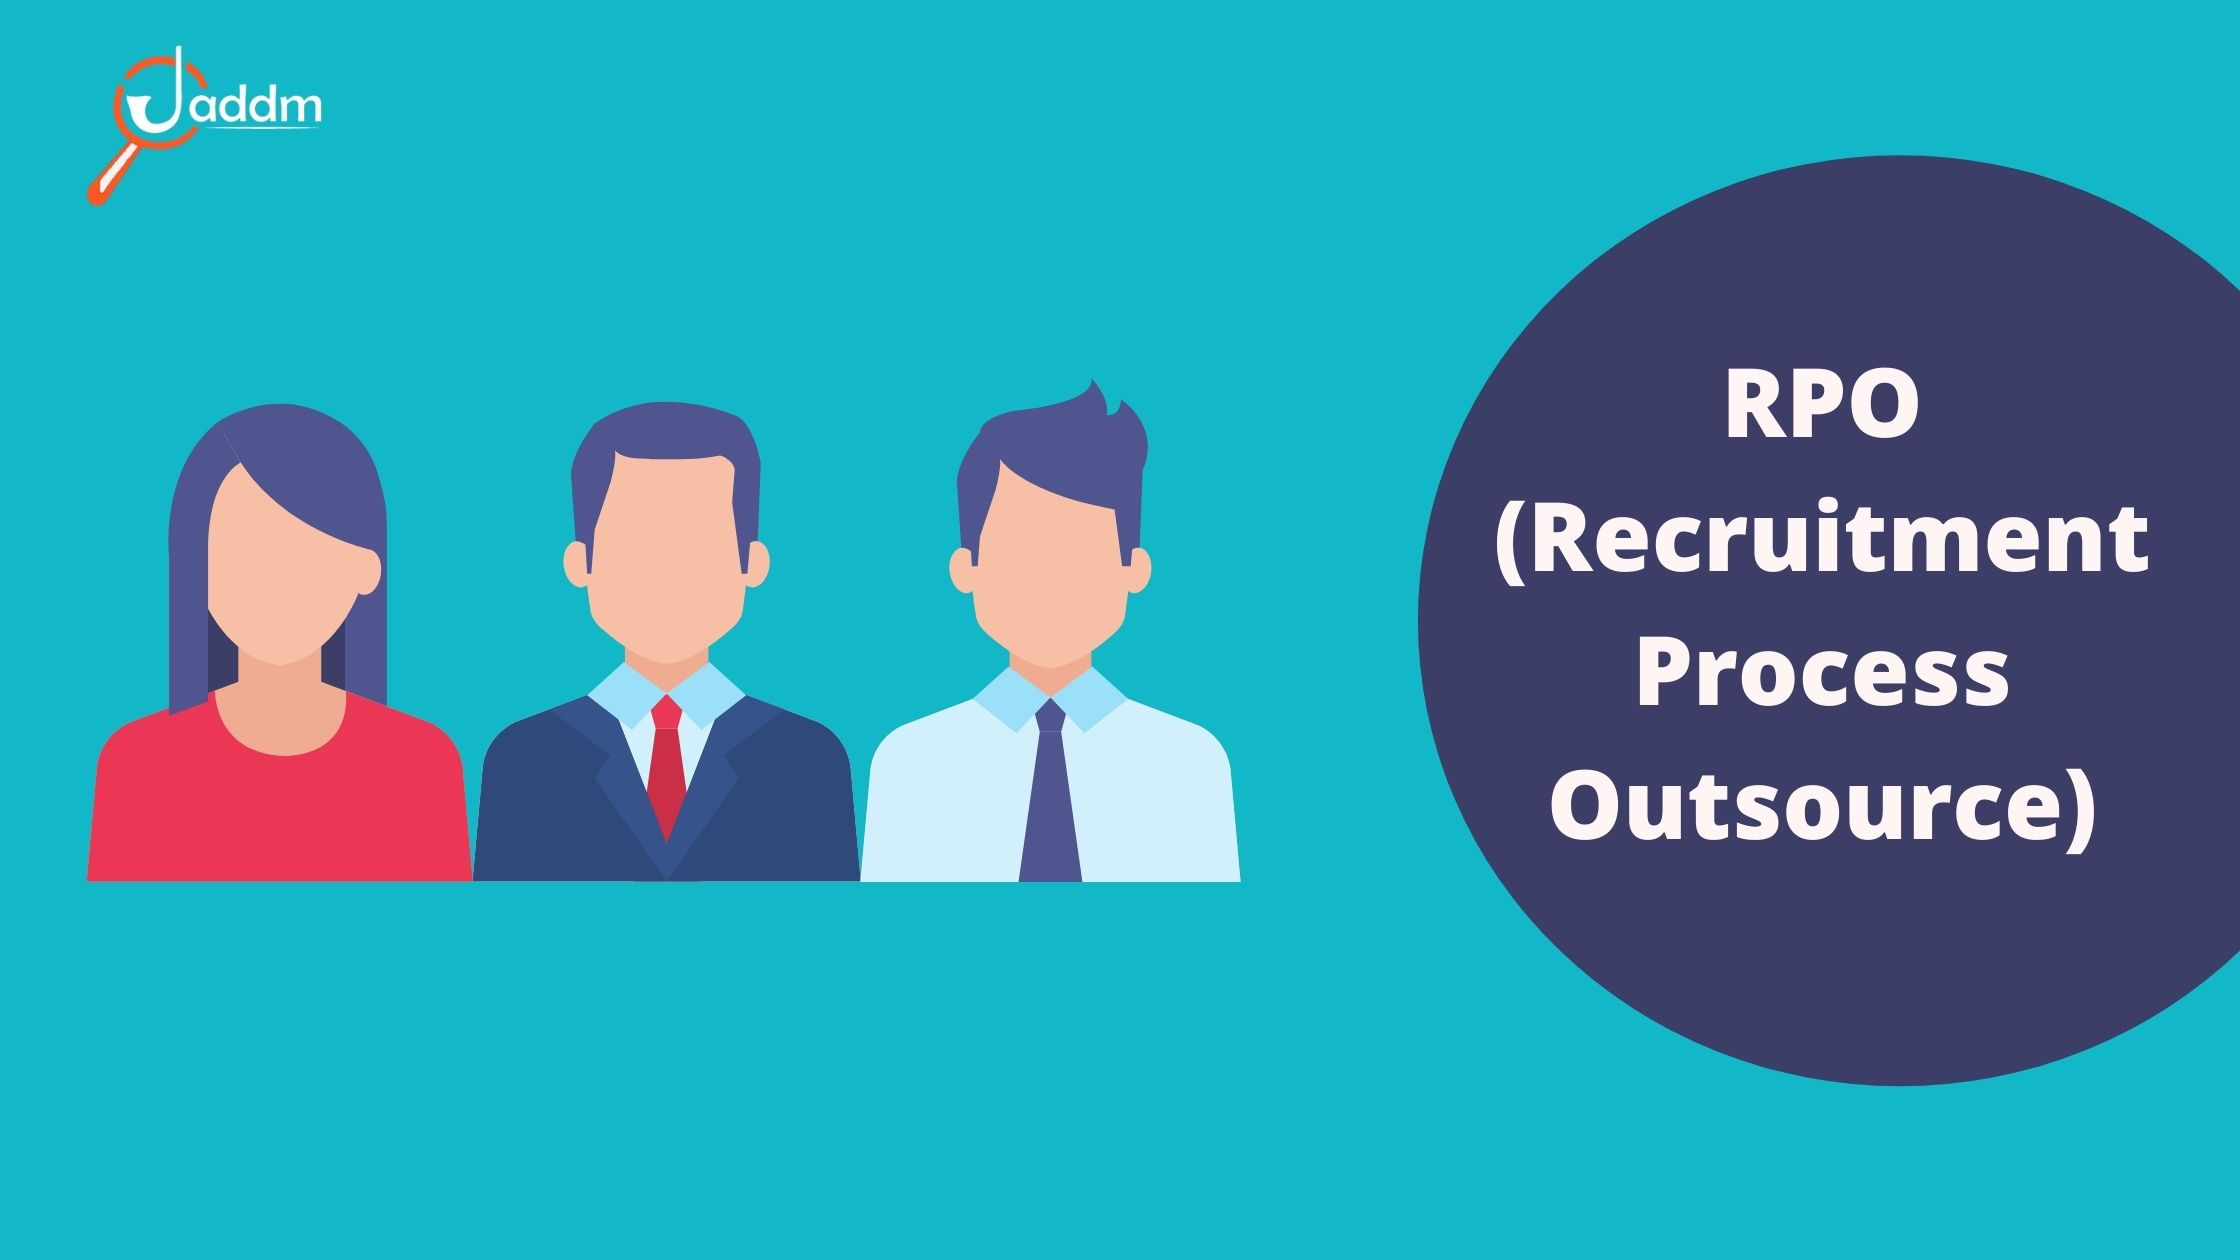 RPO (Recruitment Process Outsource)